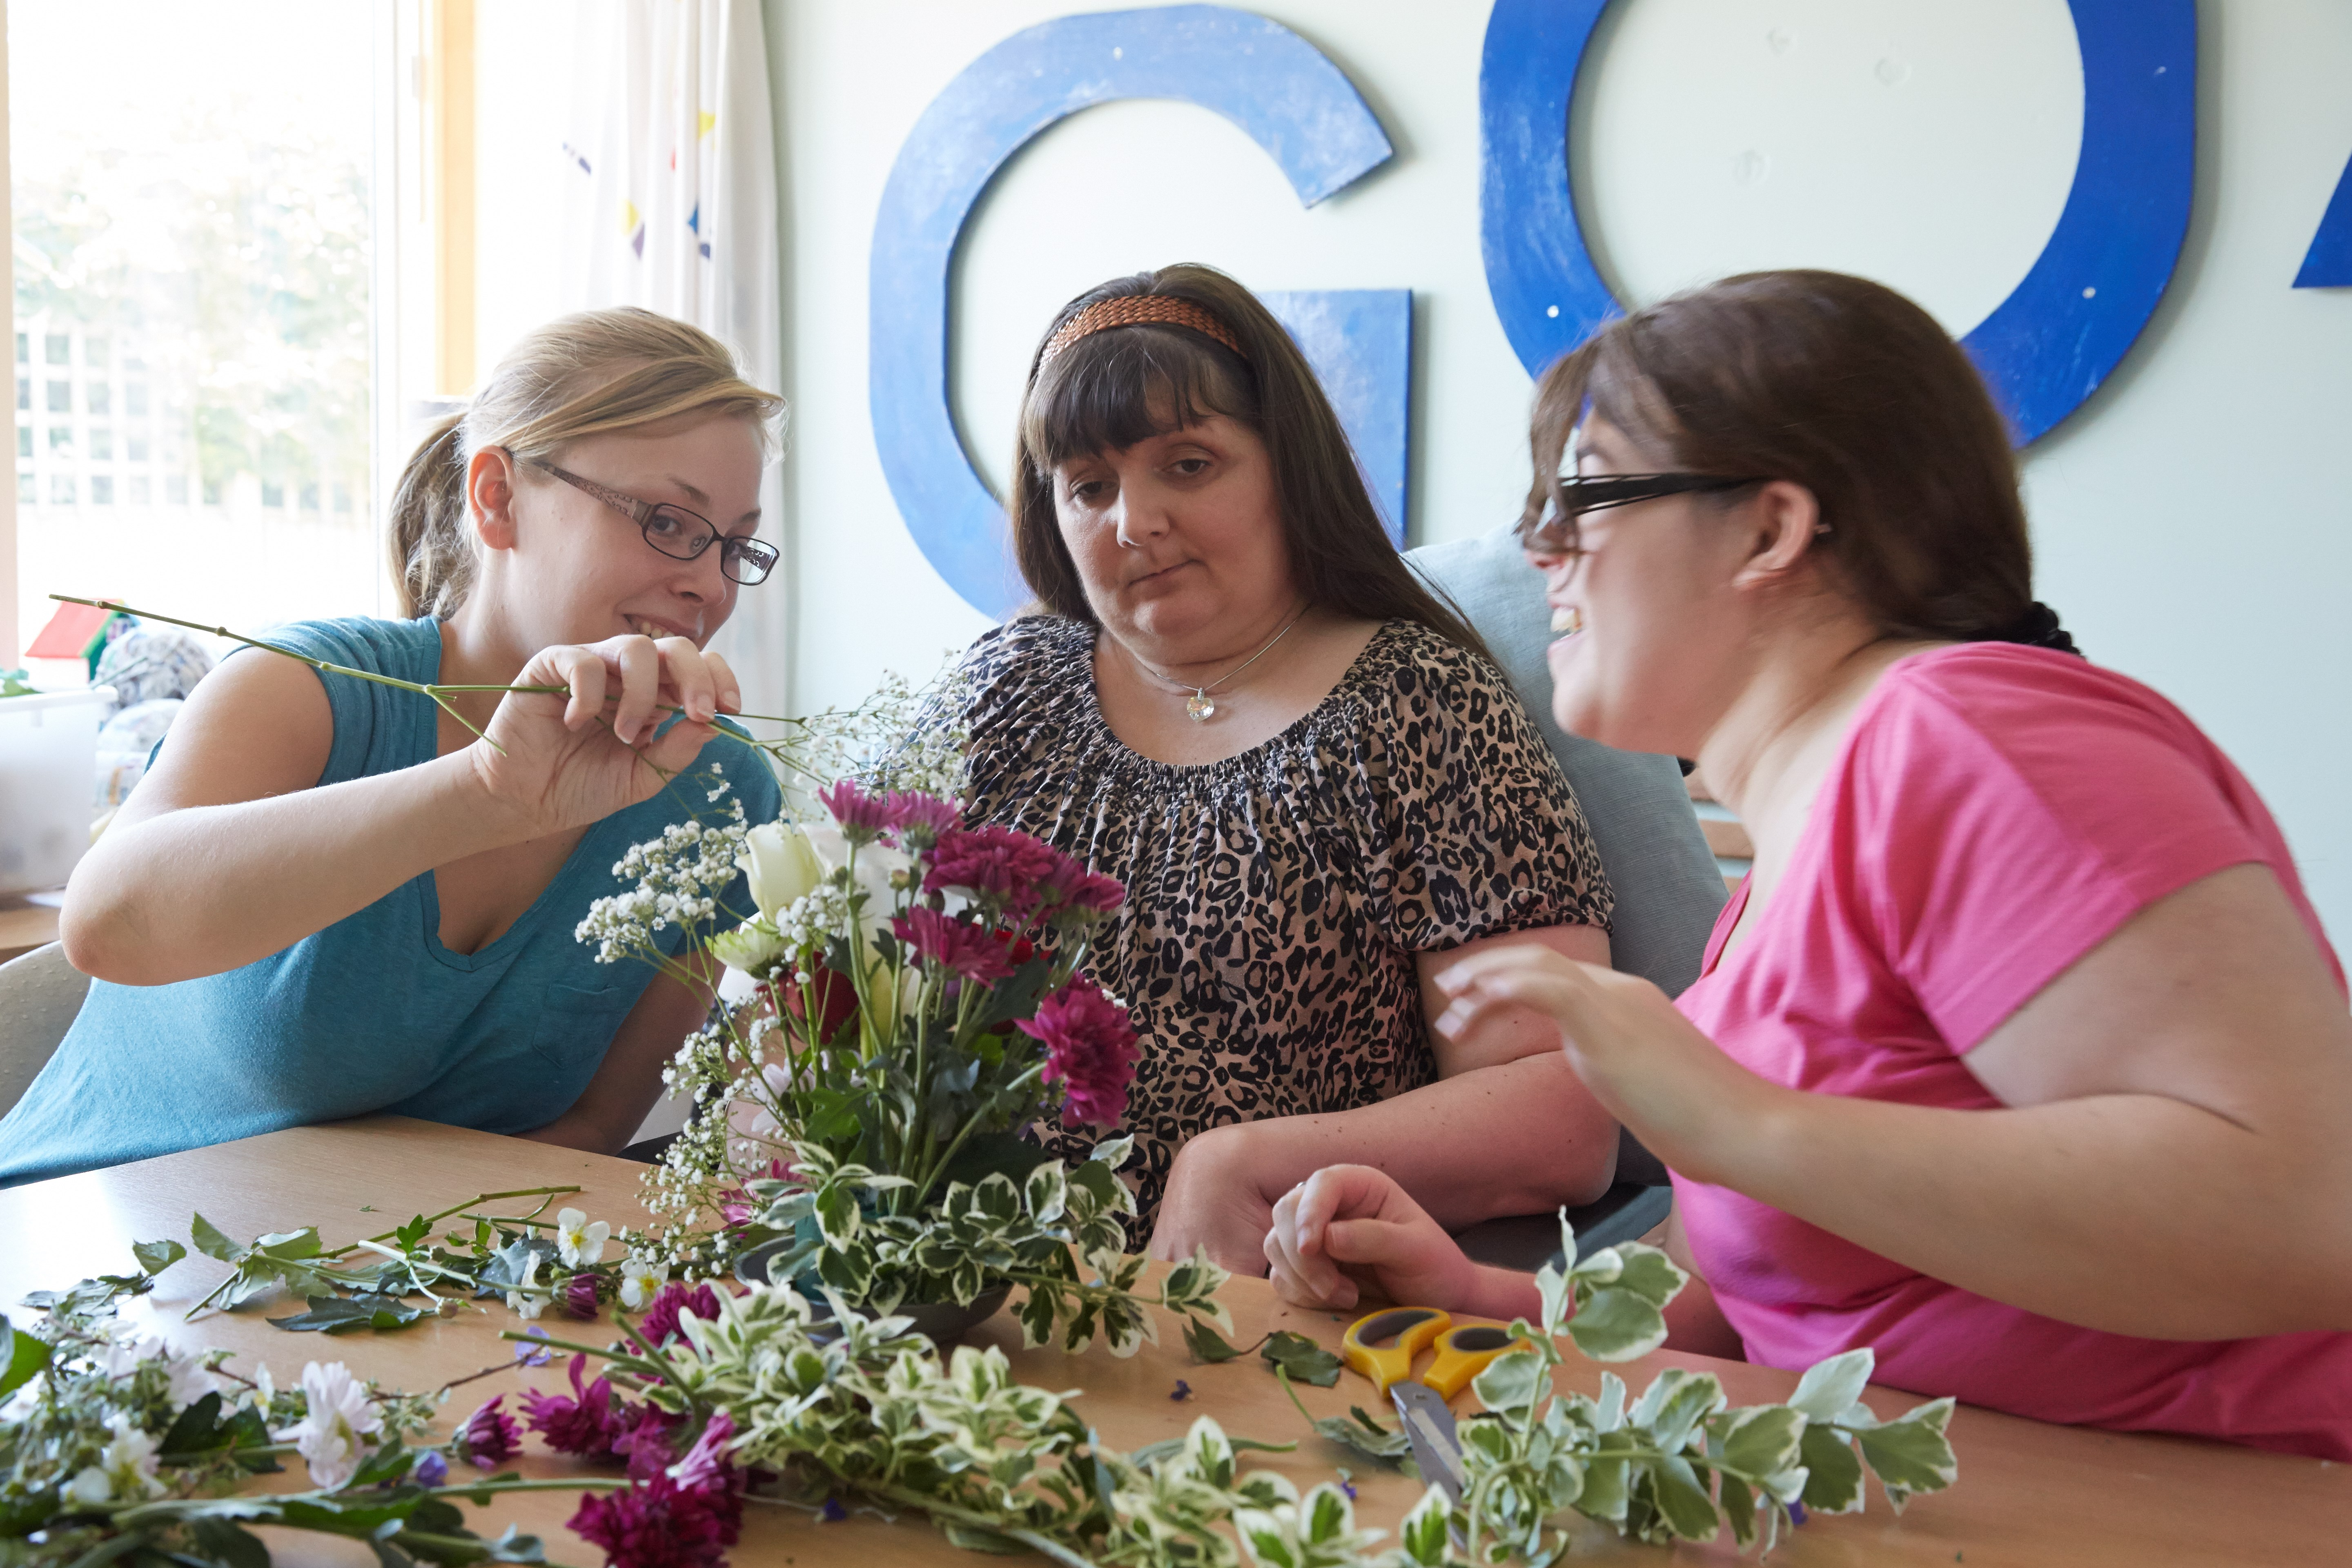 service users flower arranging with support worker in Fen House